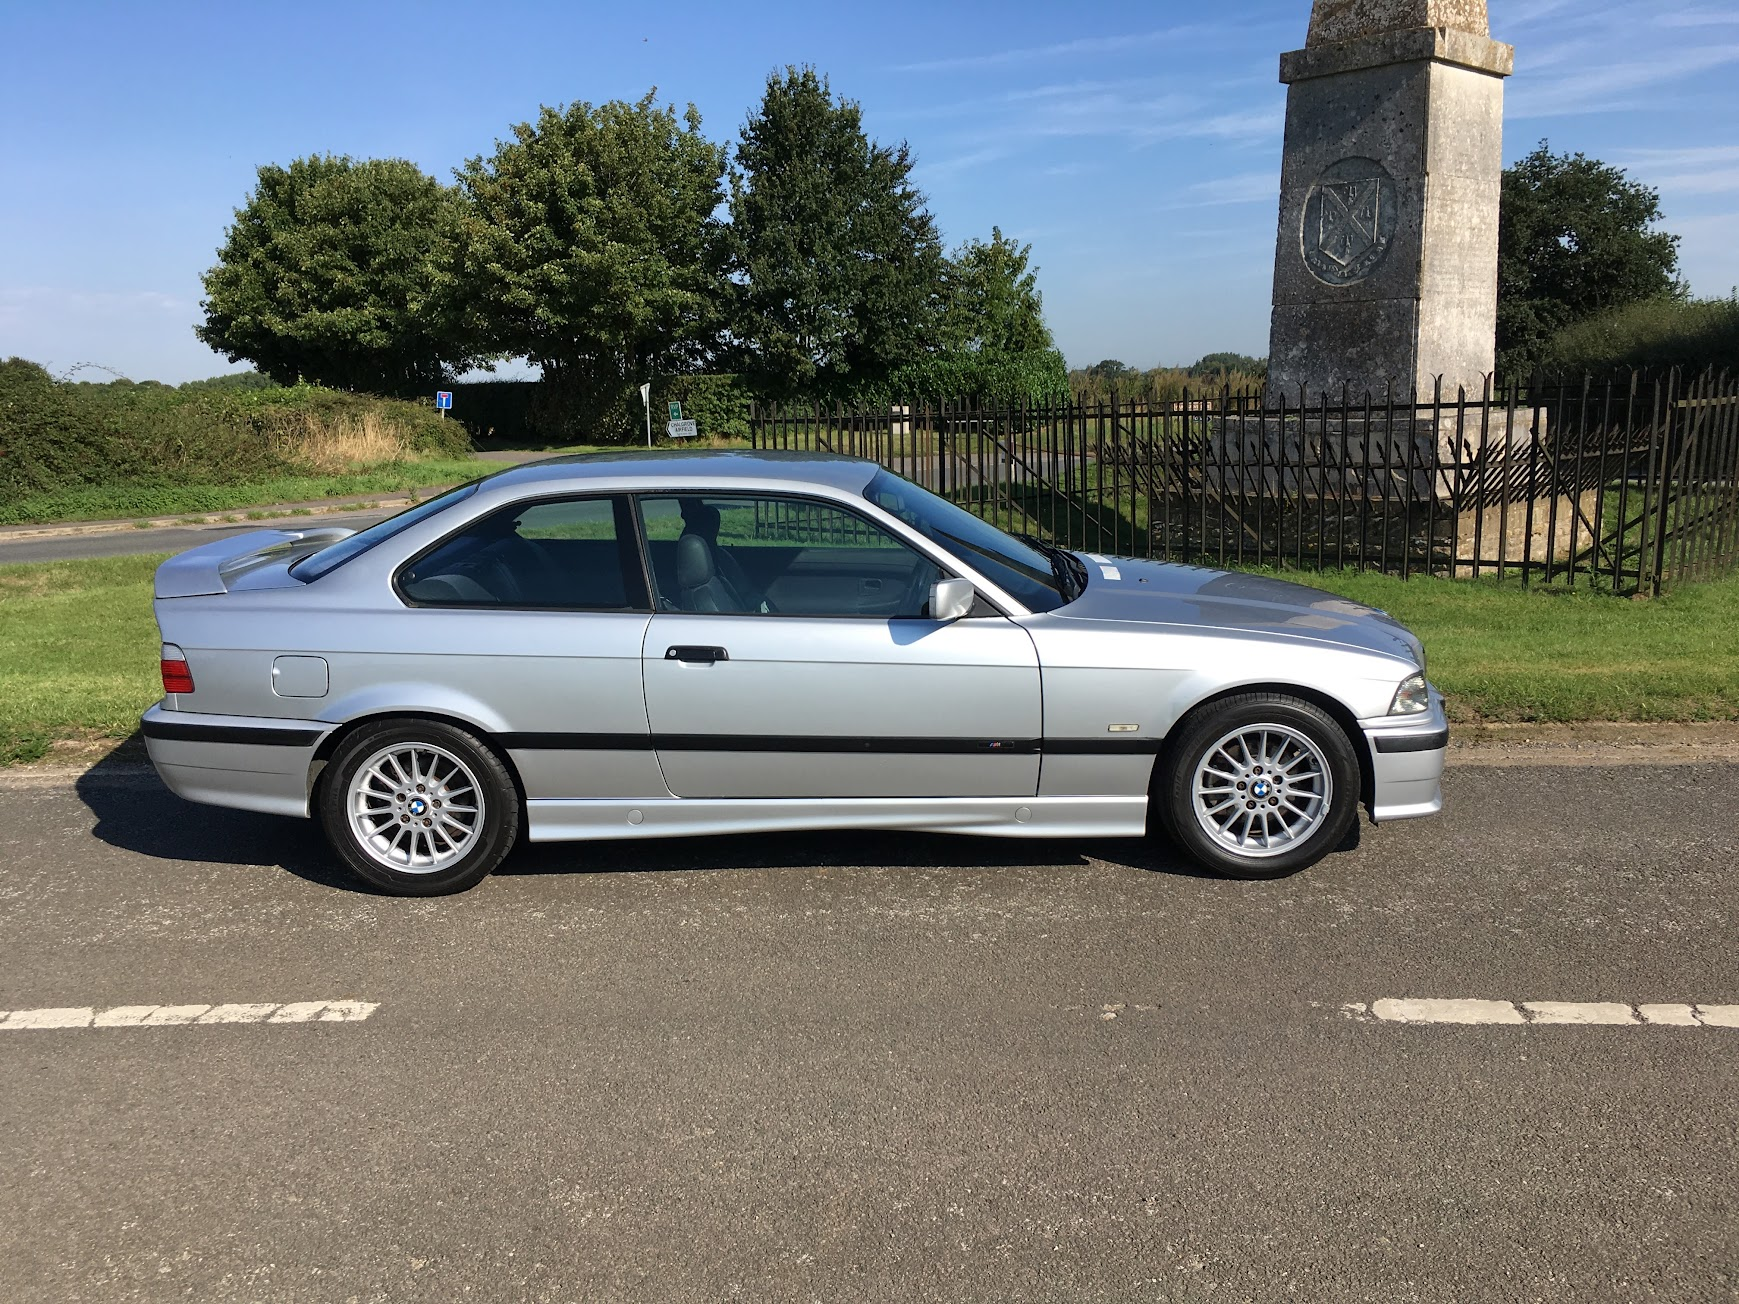 bmw e36 318is mtech coupe 1250 no offers oxfordshire retro rides. Black Bedroom Furniture Sets. Home Design Ideas